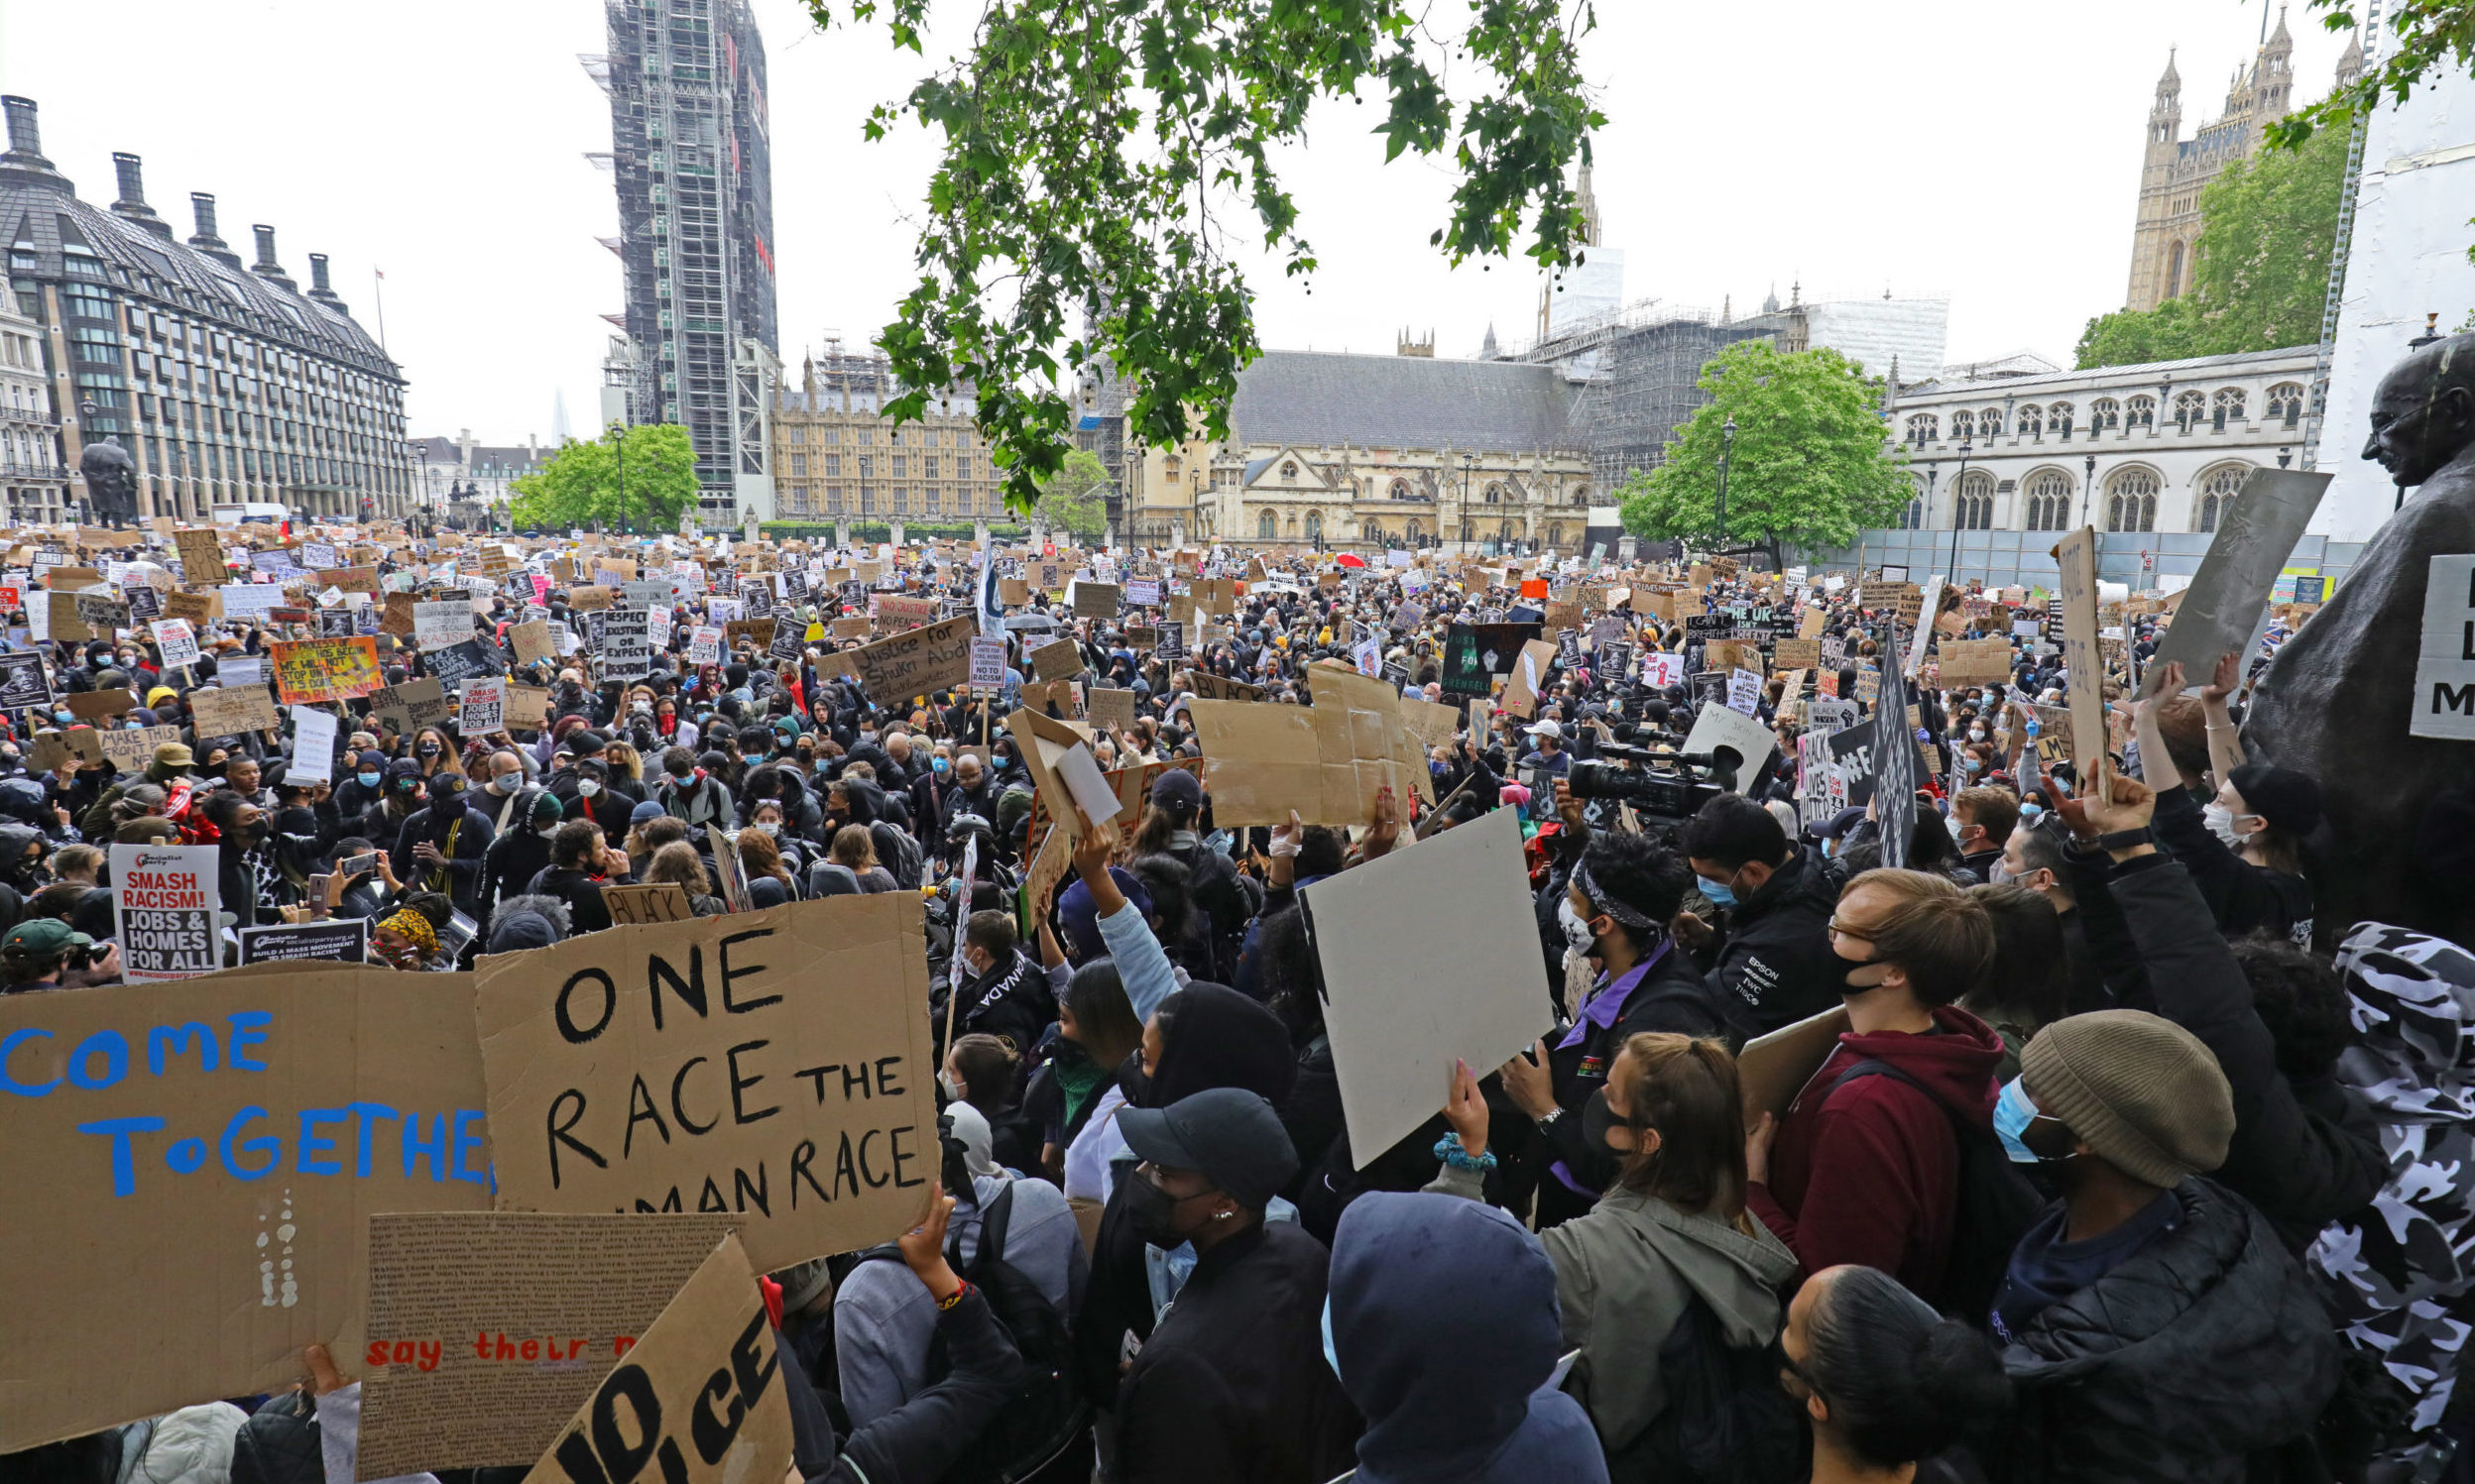 People take part in a Black Lives Matter protest rally in Parliament Square, London.